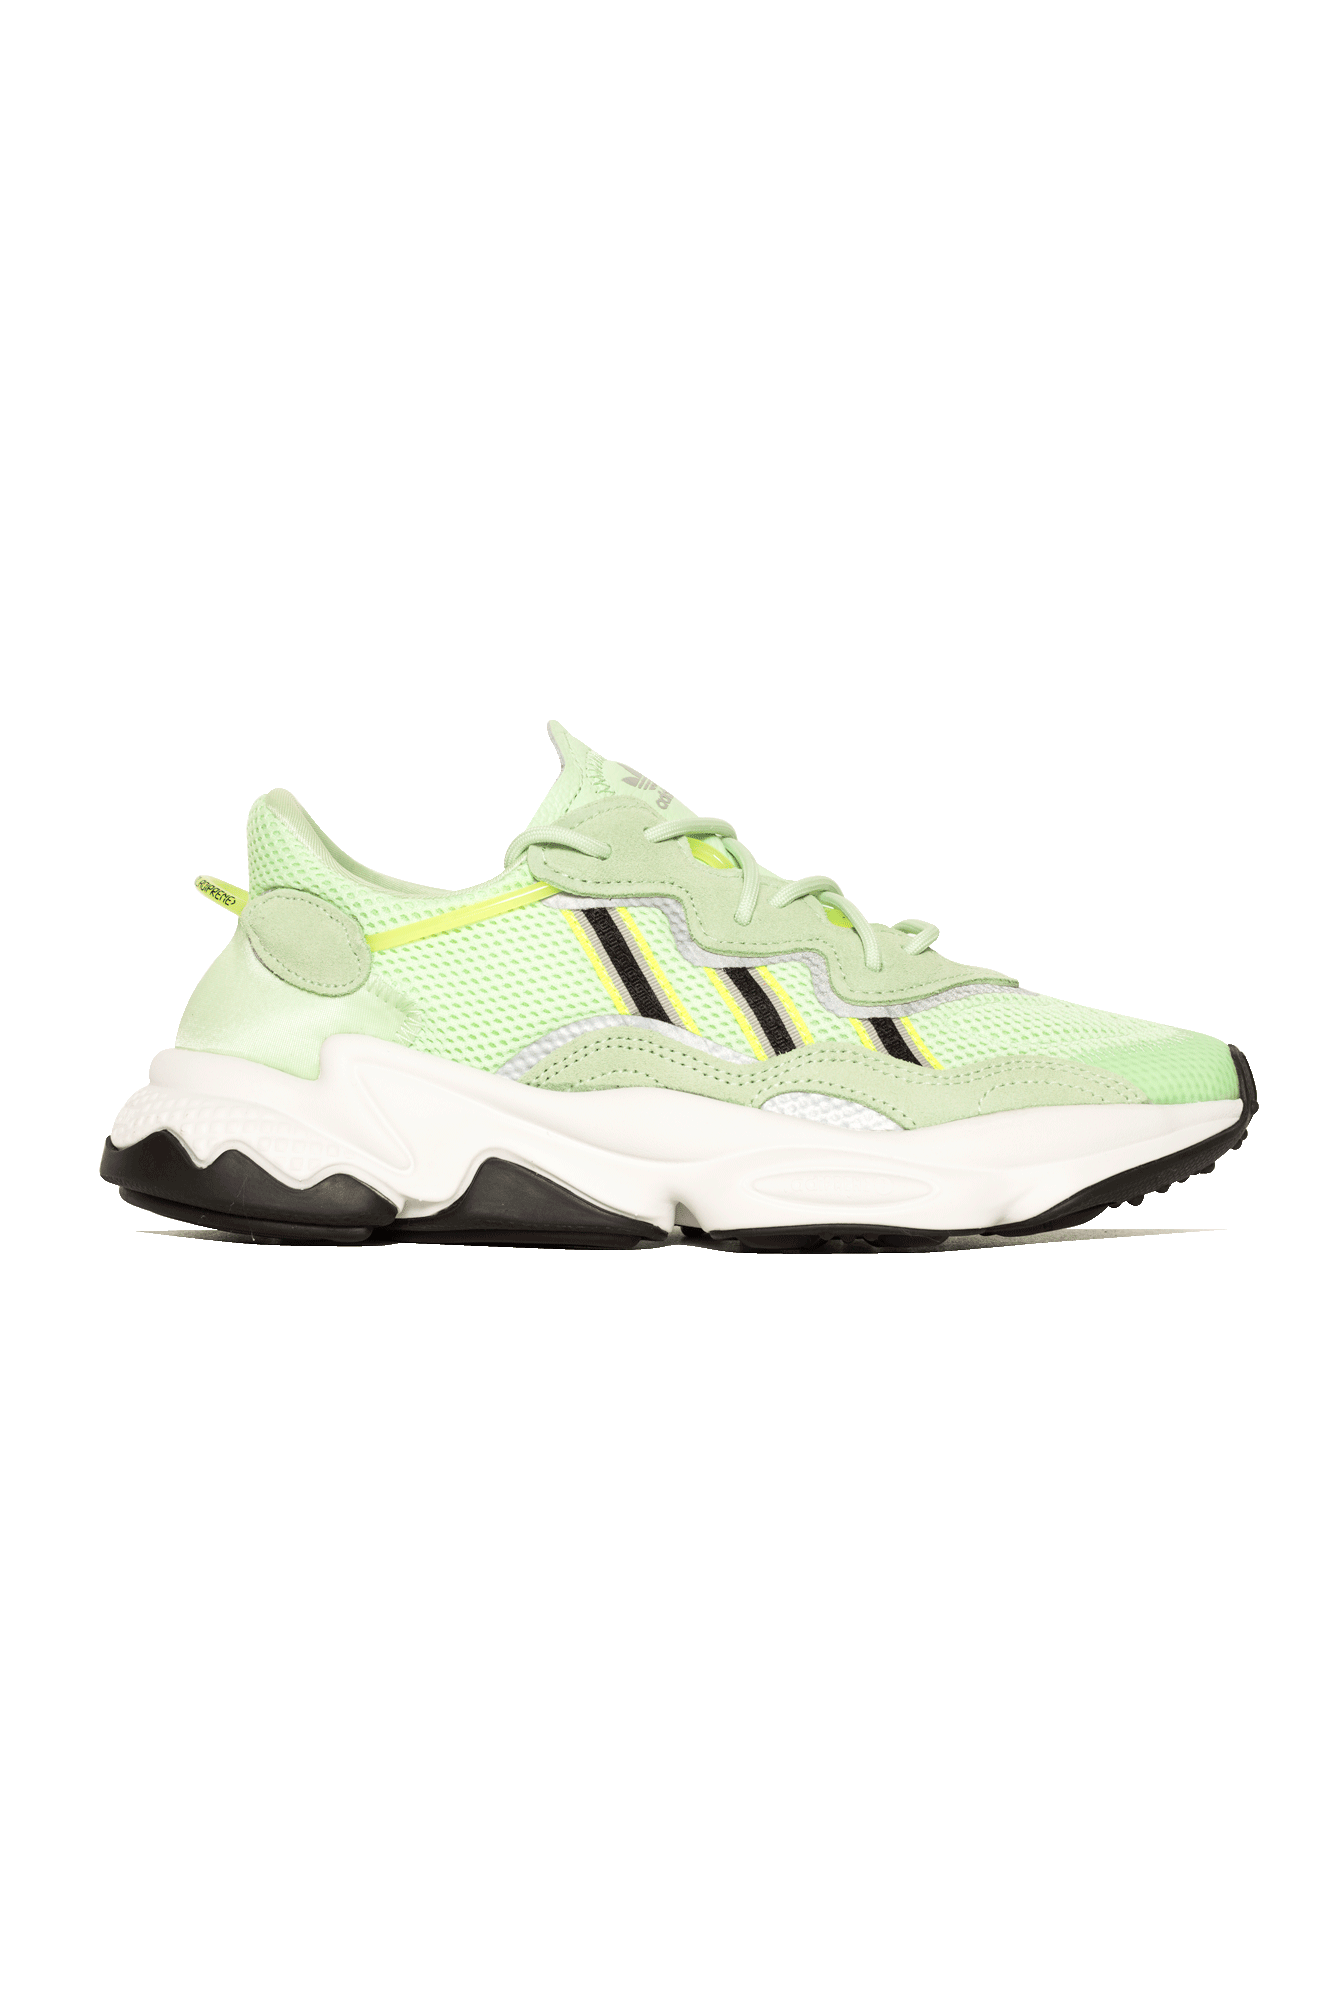 Adidas Shoes PNG Images, Free Transparent Adidas Shoes